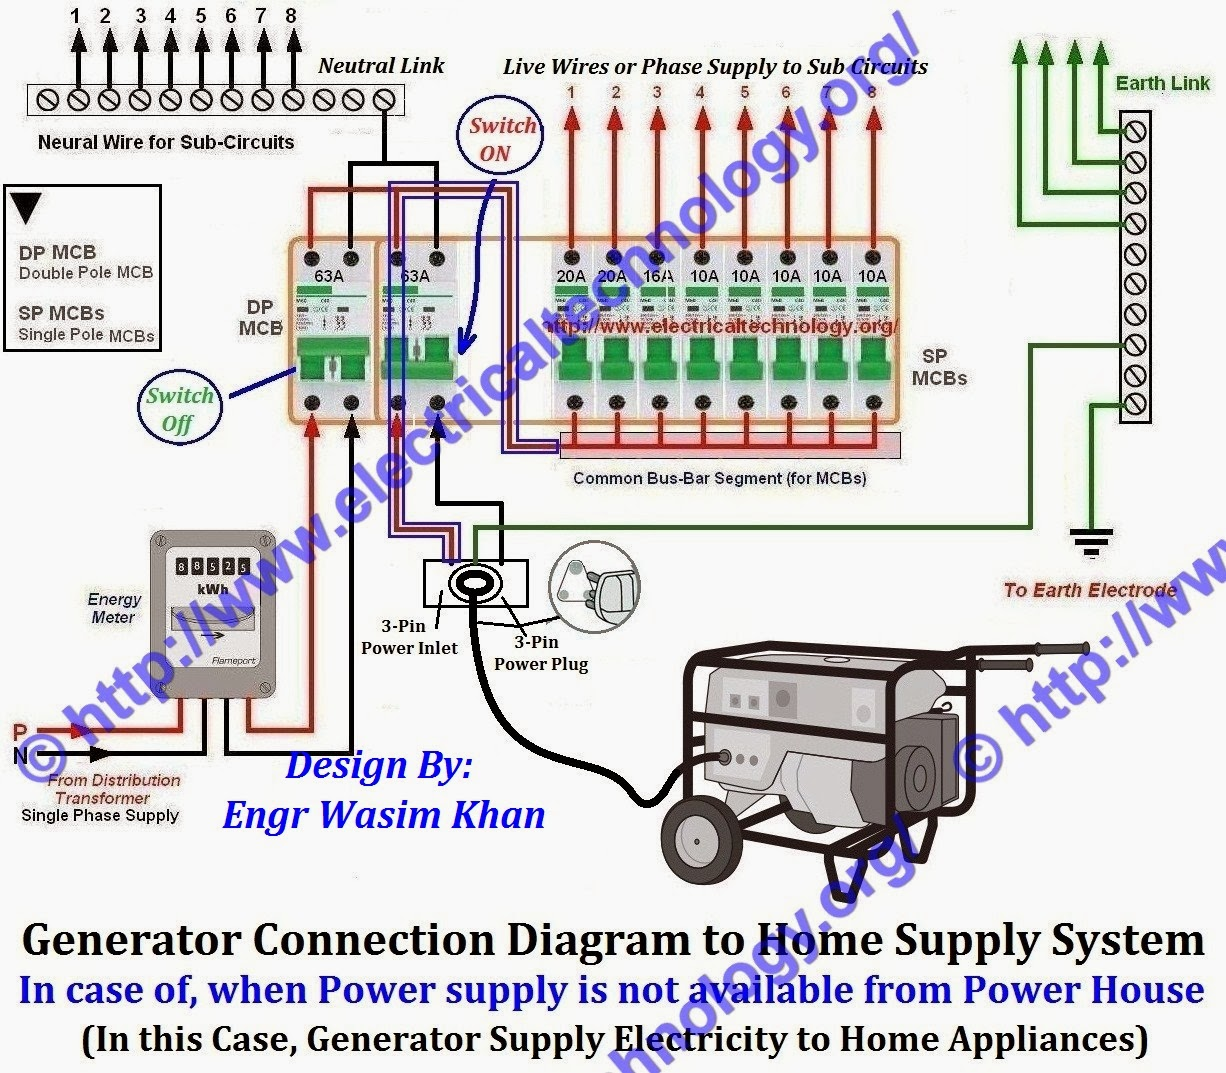 generator to house wiring diagram connecting generator to house wiring generator connection diagram to home supply (with separate ...